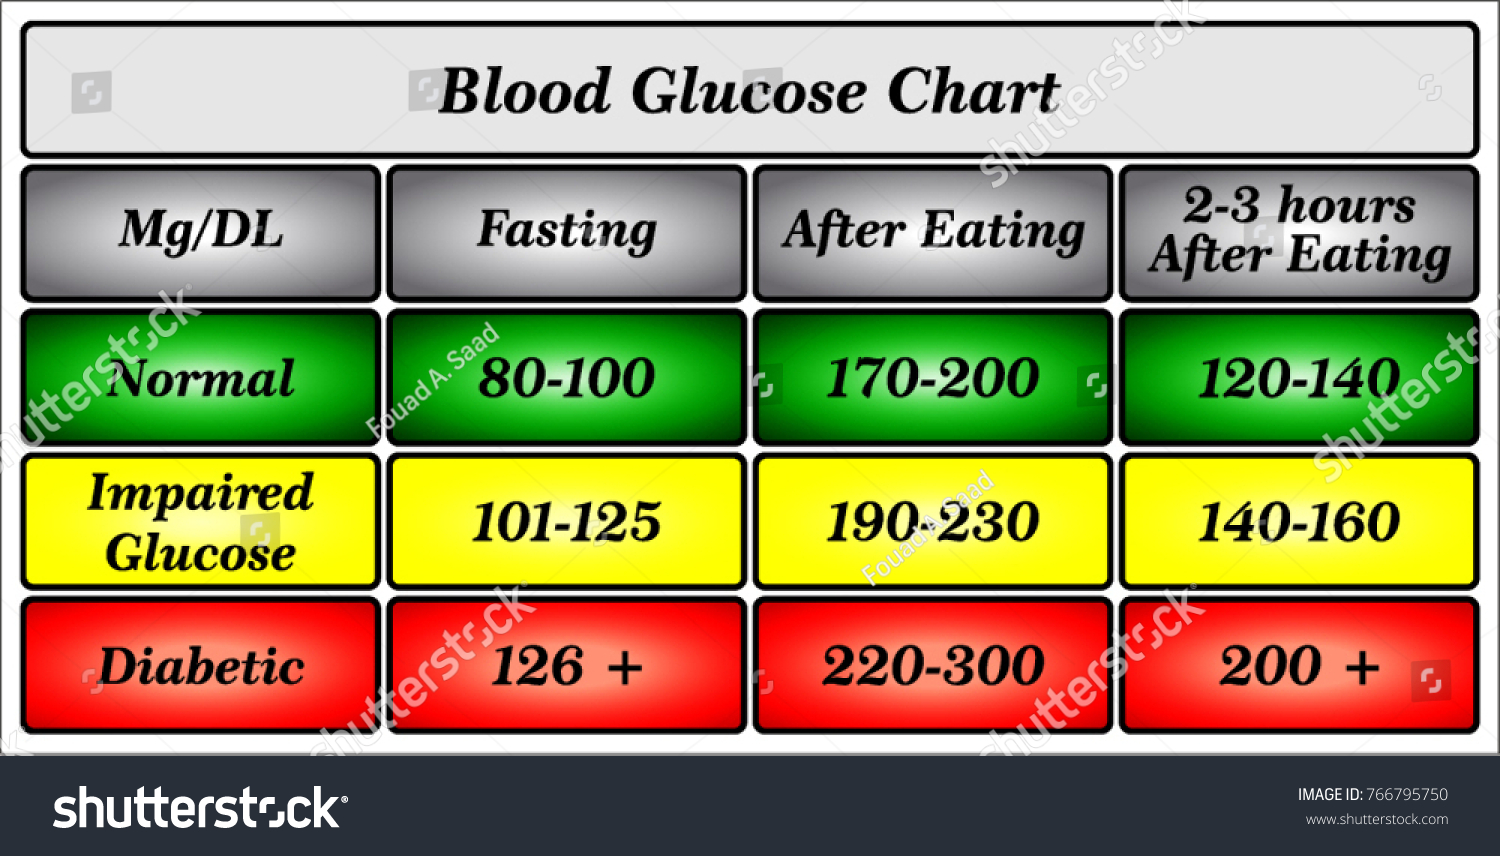 blood glucose chart stock vector royalty free 766795750 shutterstock